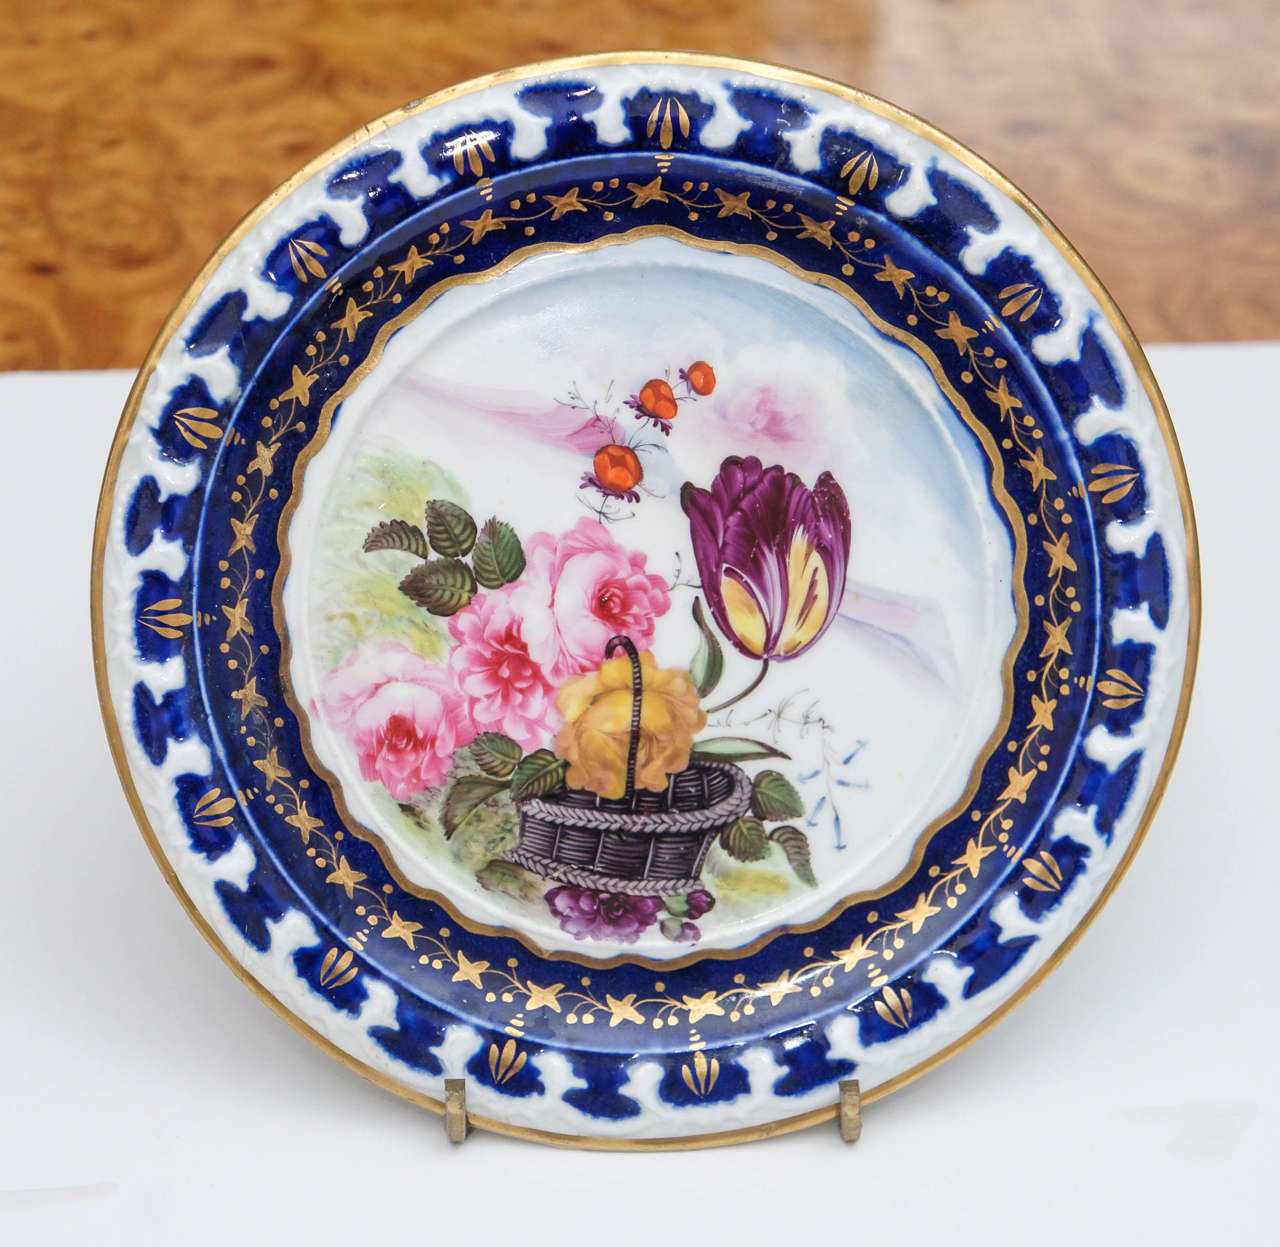 French Pair of Vieux Paris Small Decorative Plates For Sale  sc 1 st  1stDibs & Pair of Vieux Paris Small Decorative Plates For Sale at 1stdibs